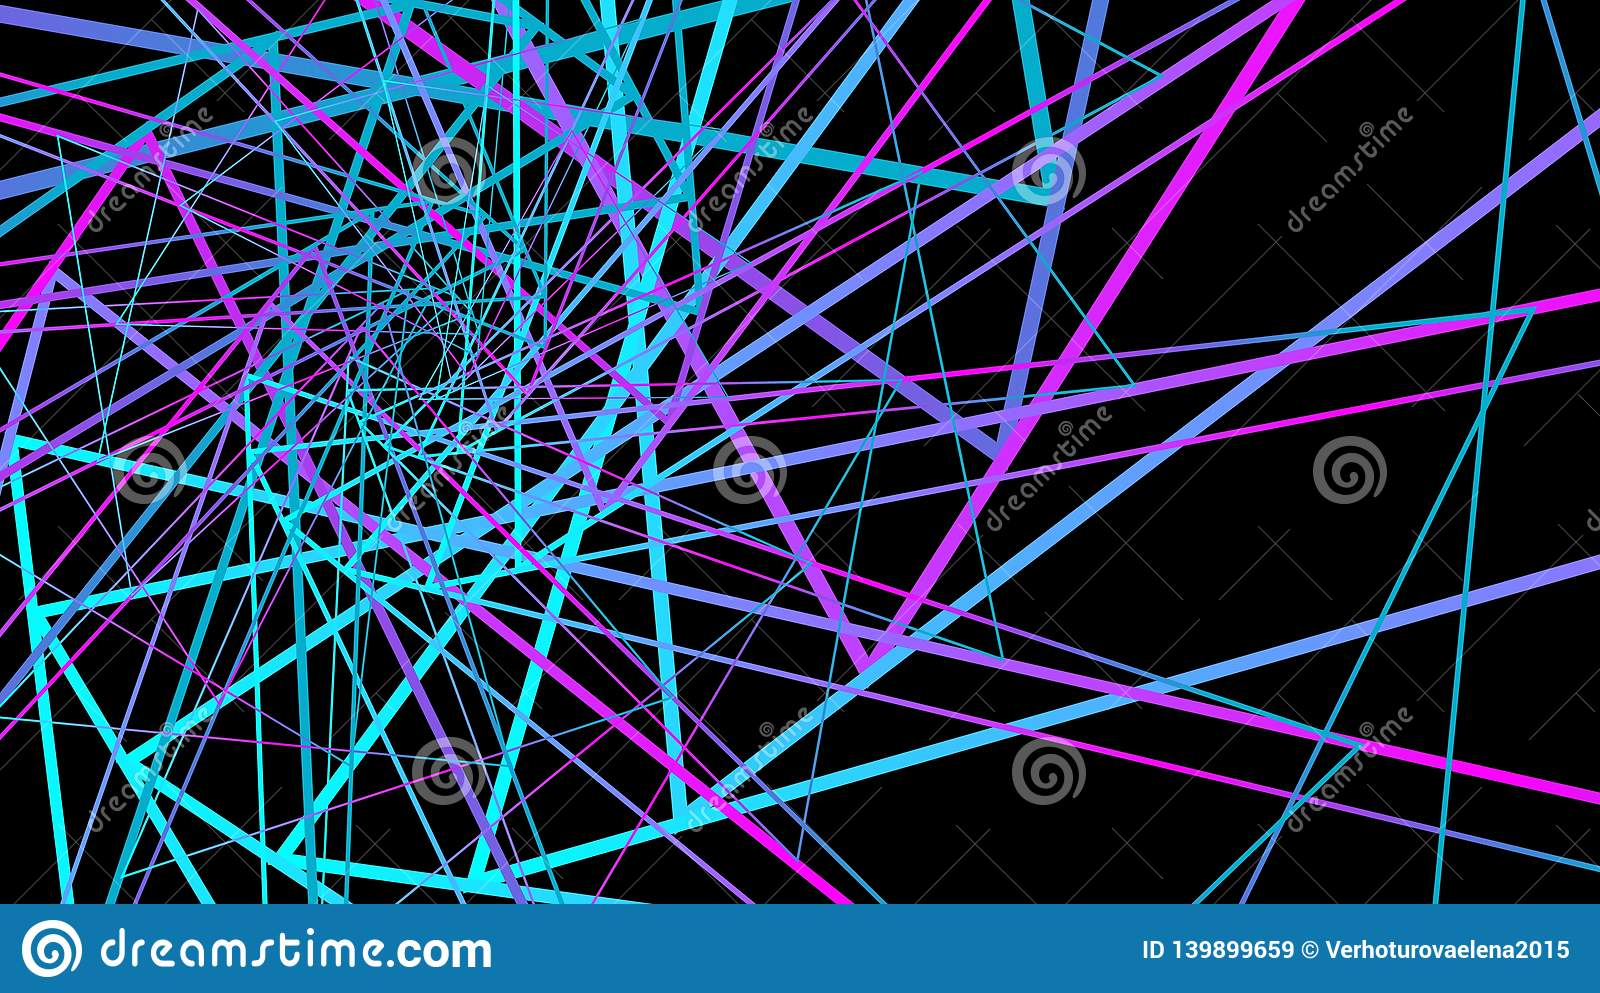 Synthwave Vaporwave Abstract Background Great Design For Any